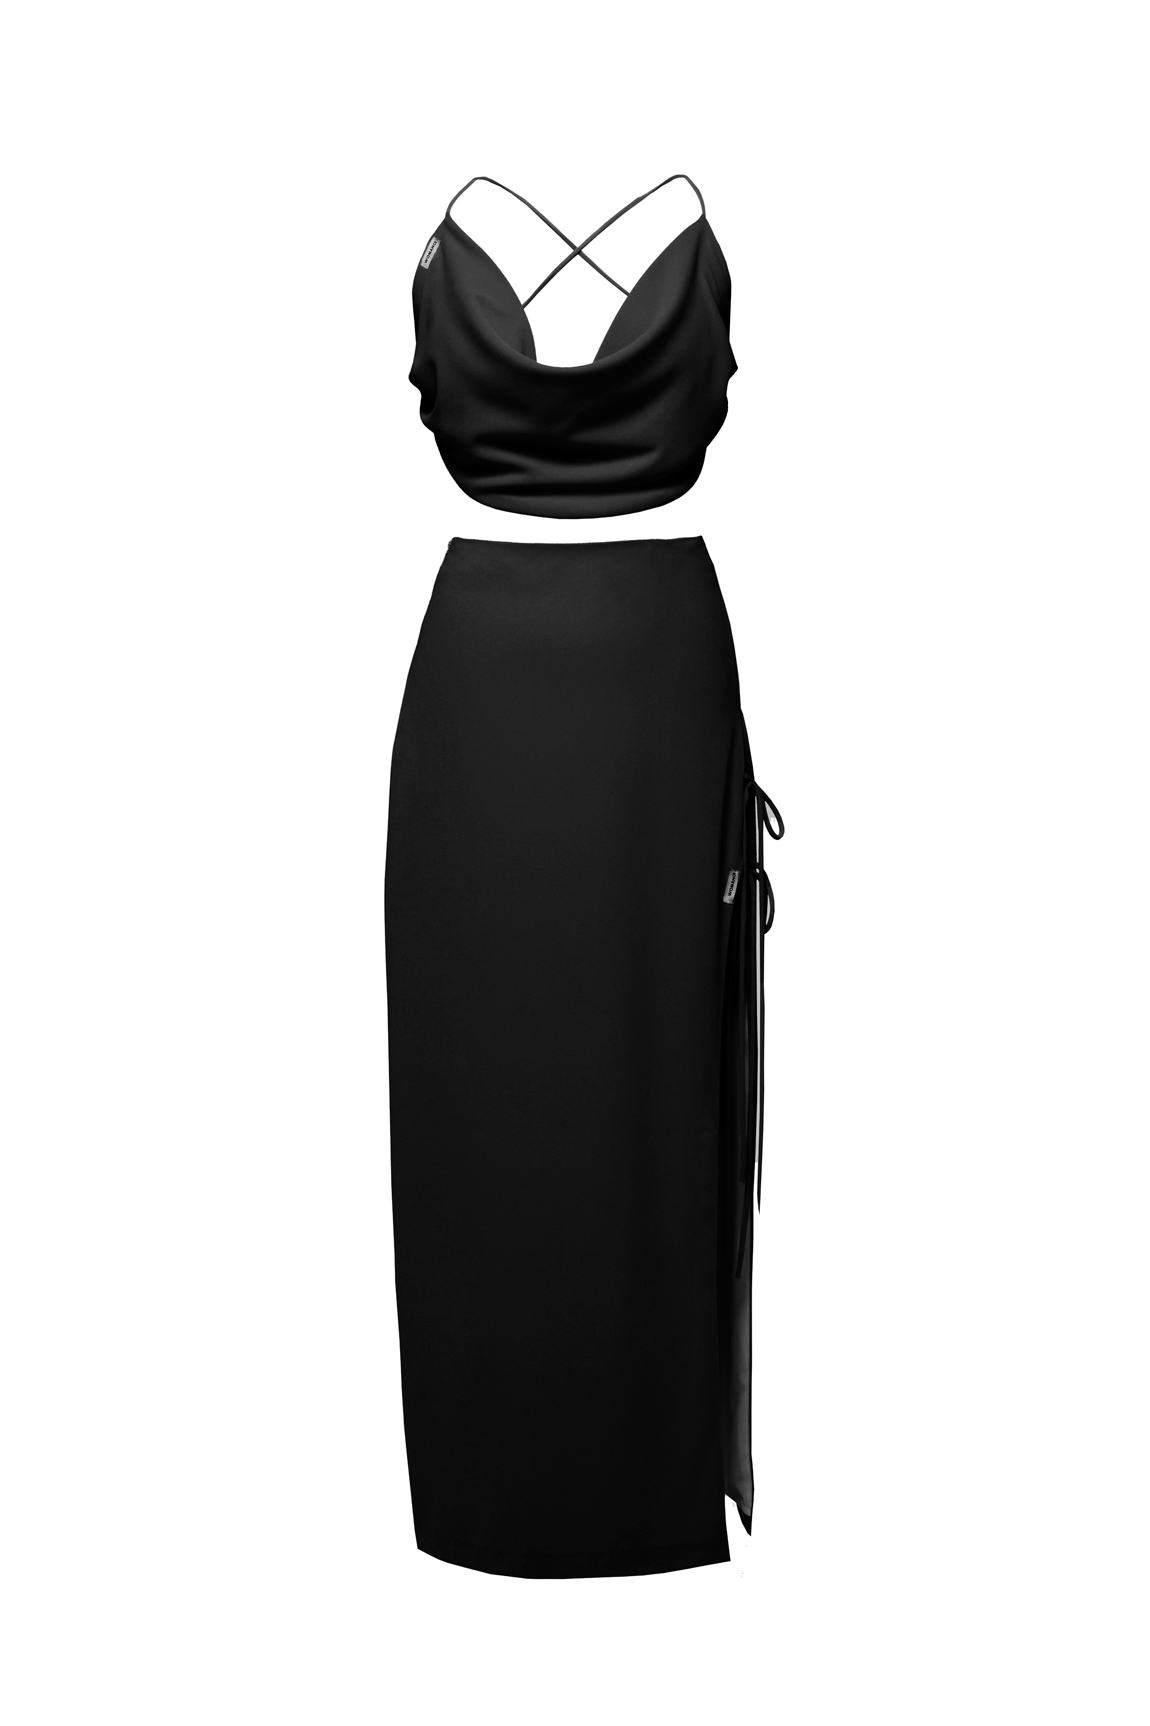 womace-lemon-crop-top-long-skirt-combo-dress-party-black